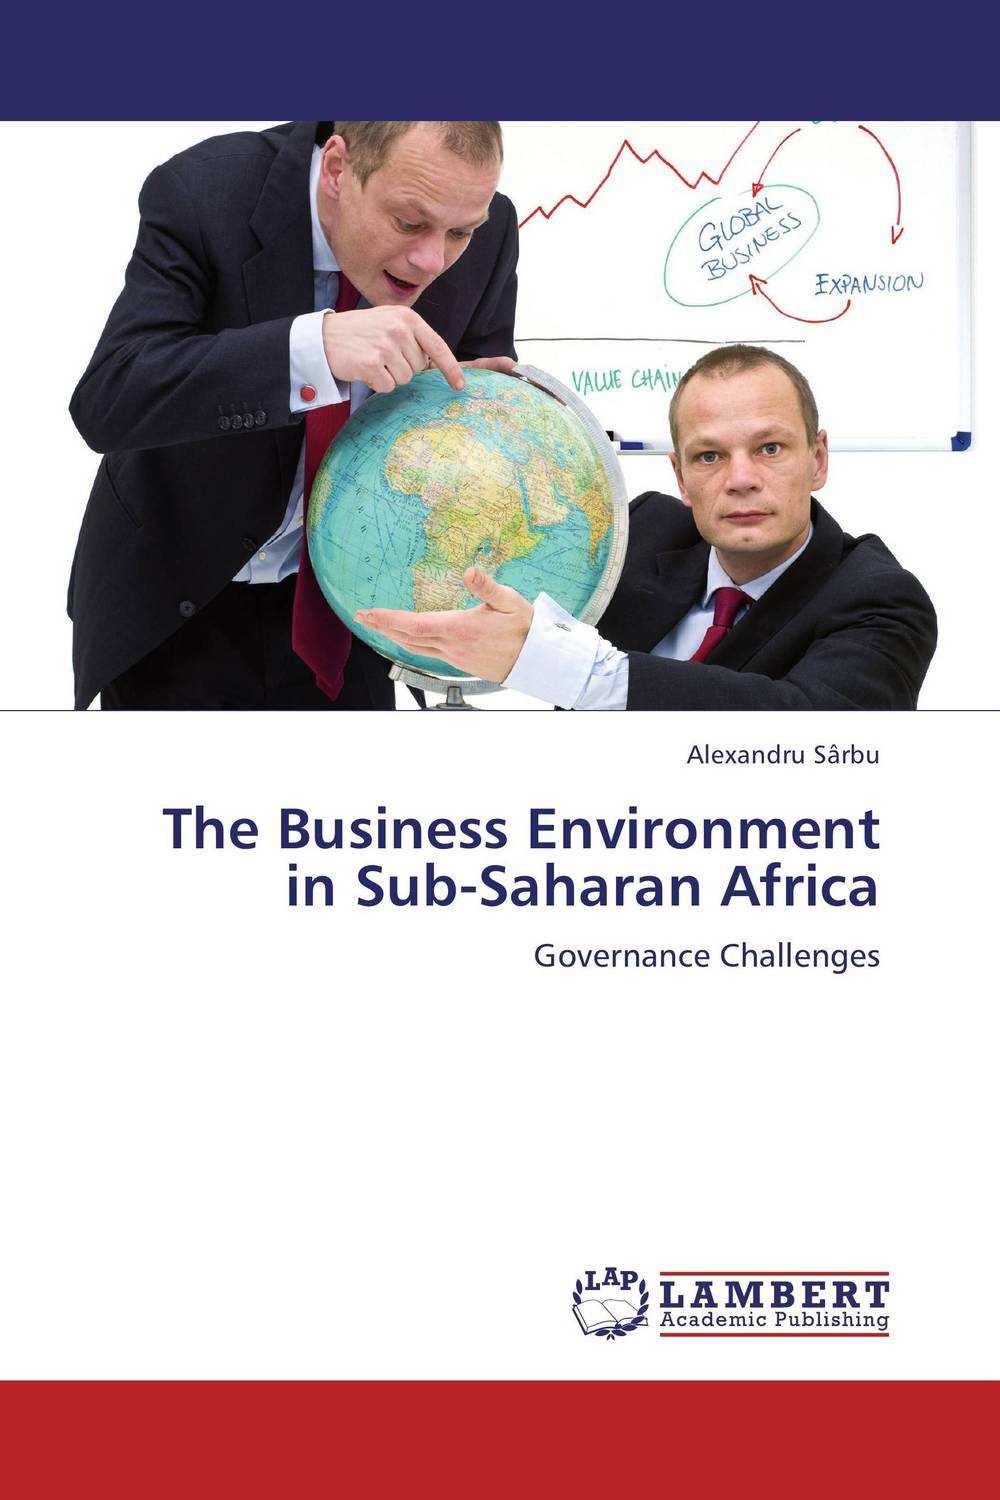 The Business Environment in Sub-Saharan Africa chinedu chinedu the debt growth link in sub saharan africa